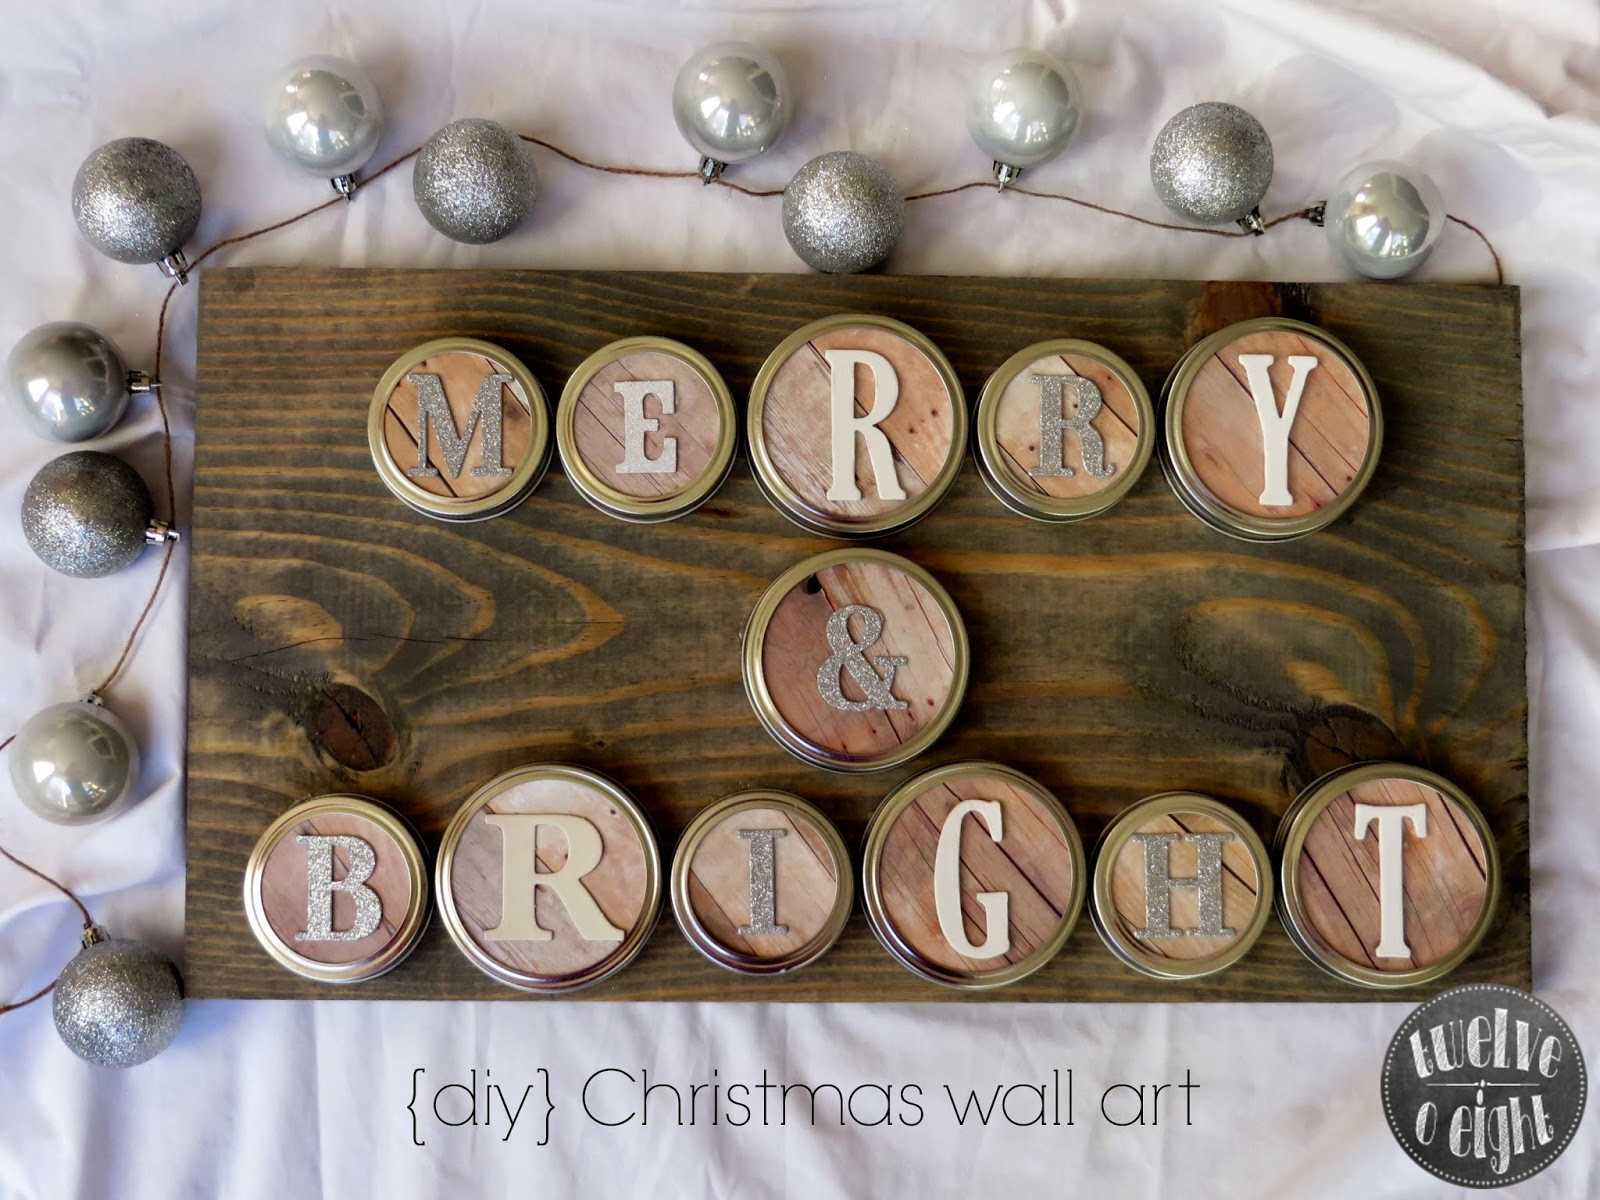 Merry + Bright Rustic Christmas Wall Art